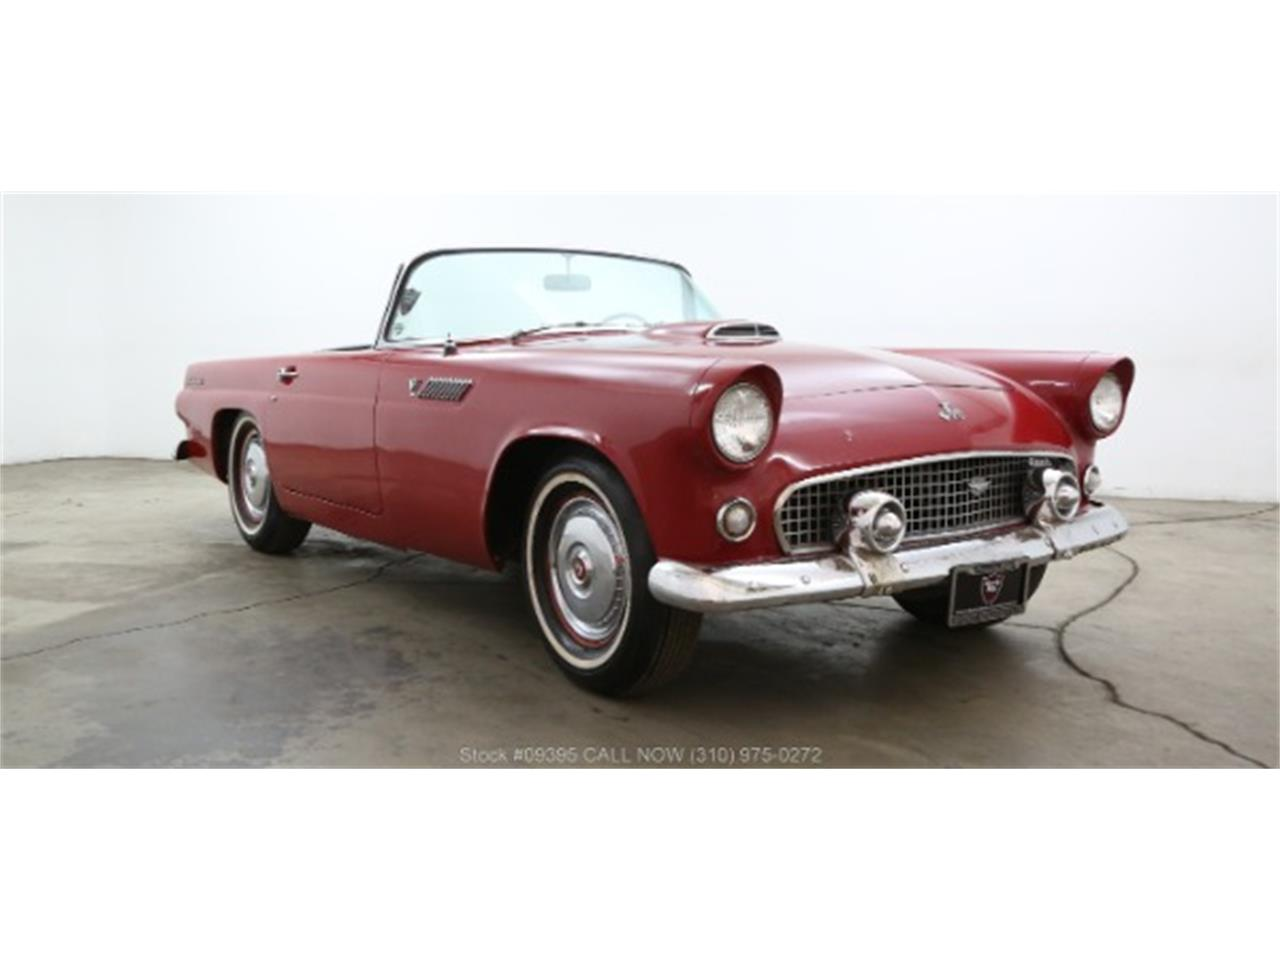 Large Picture of Classic '55 Ford Thunderbird - MZ7Q